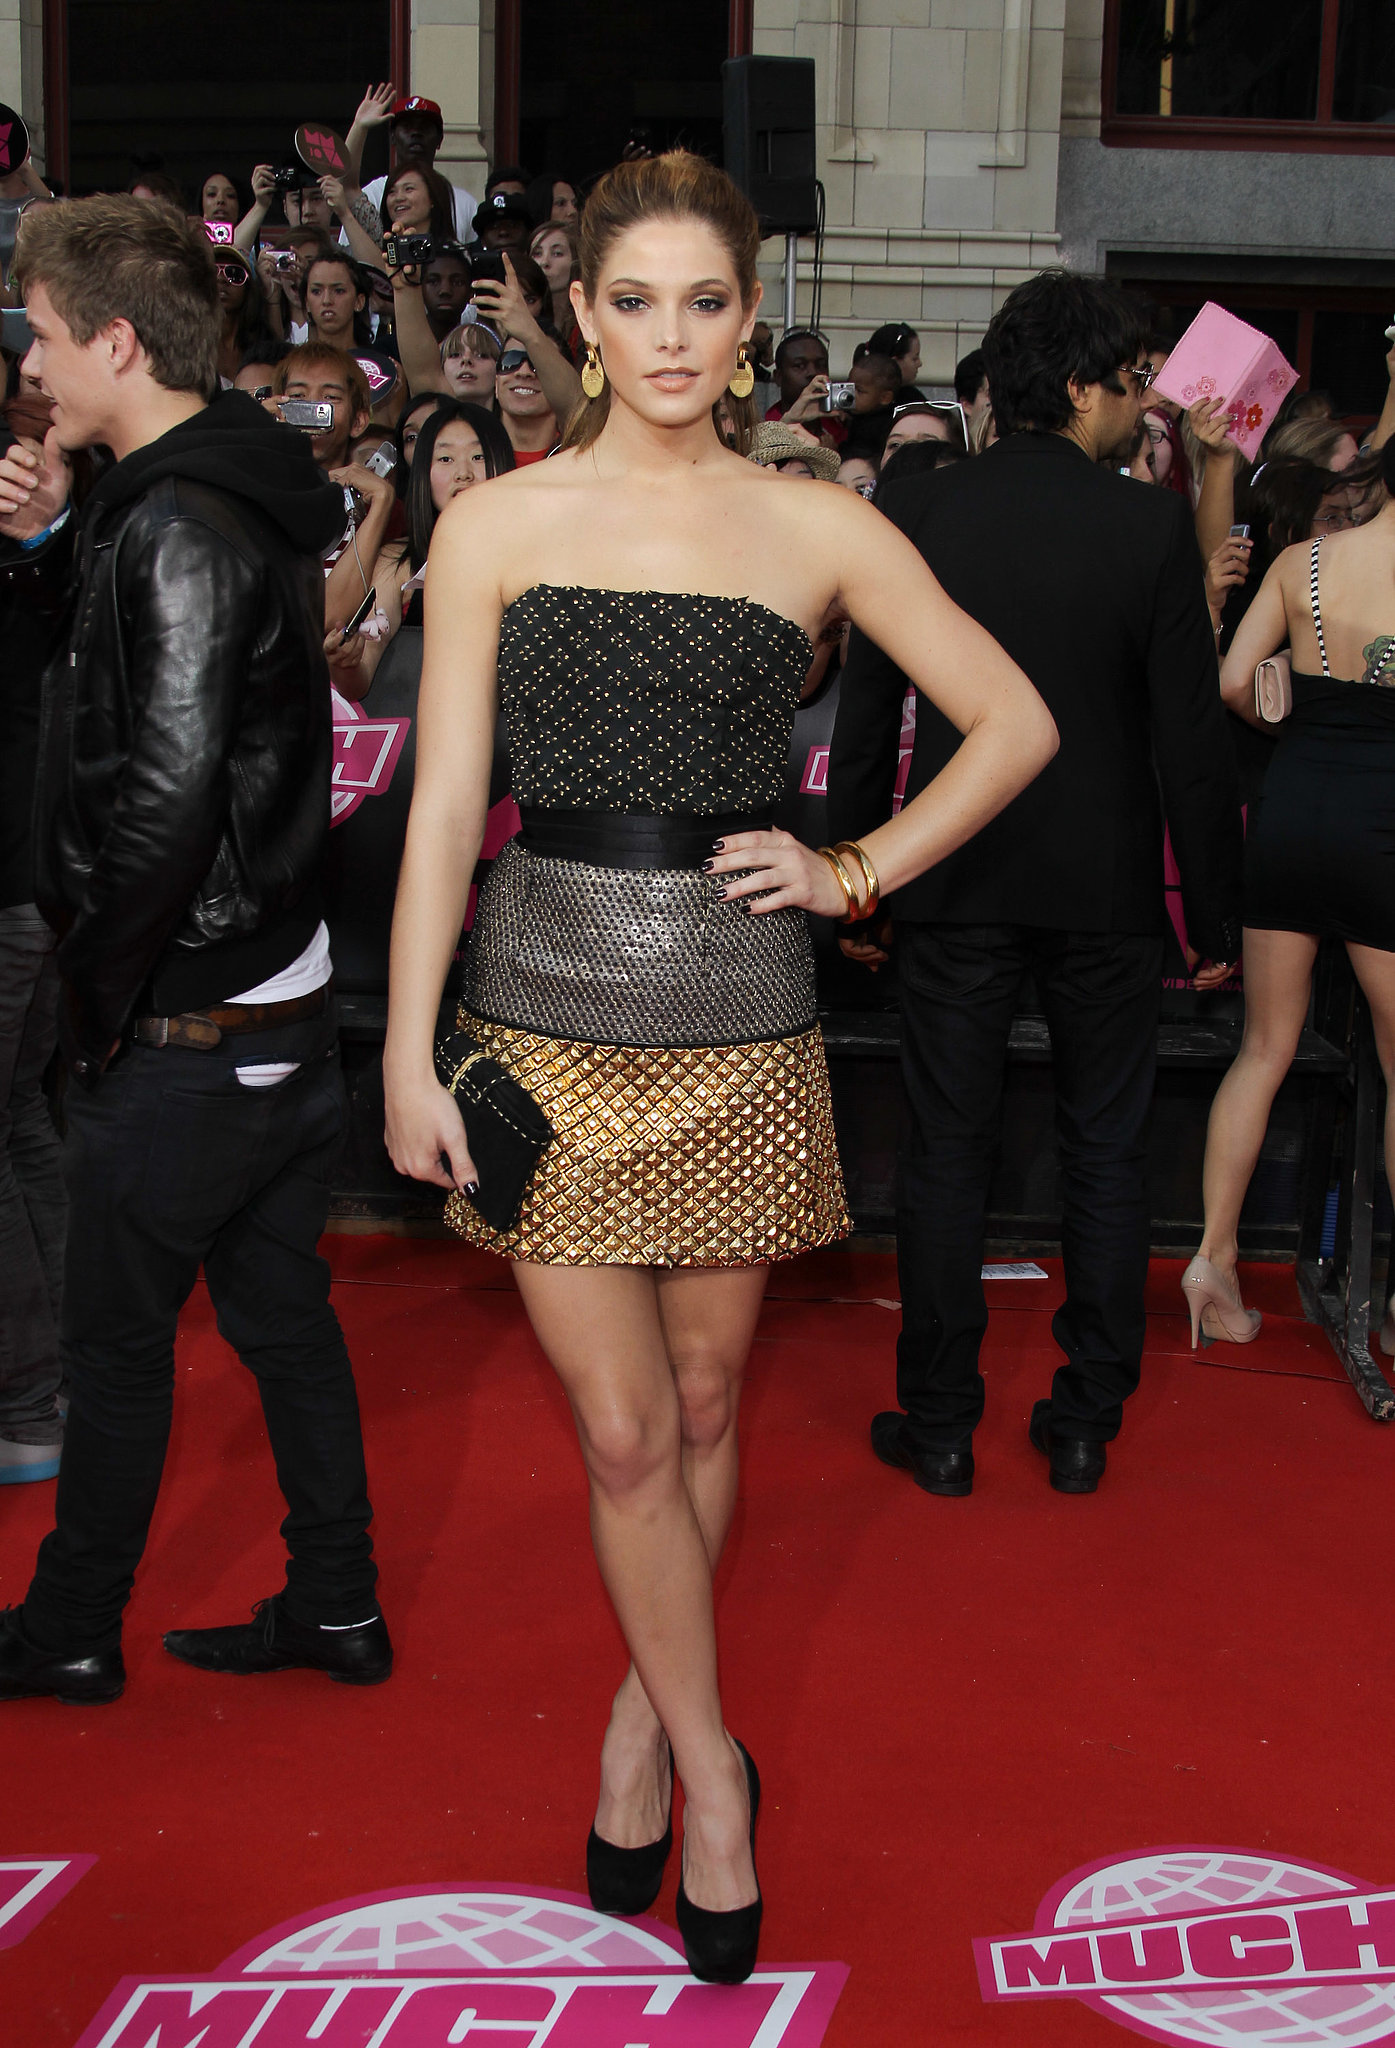 She flaunted her stems in a strapless Isaac Mizrahi mini at the MuchMusic Awards in 2010.